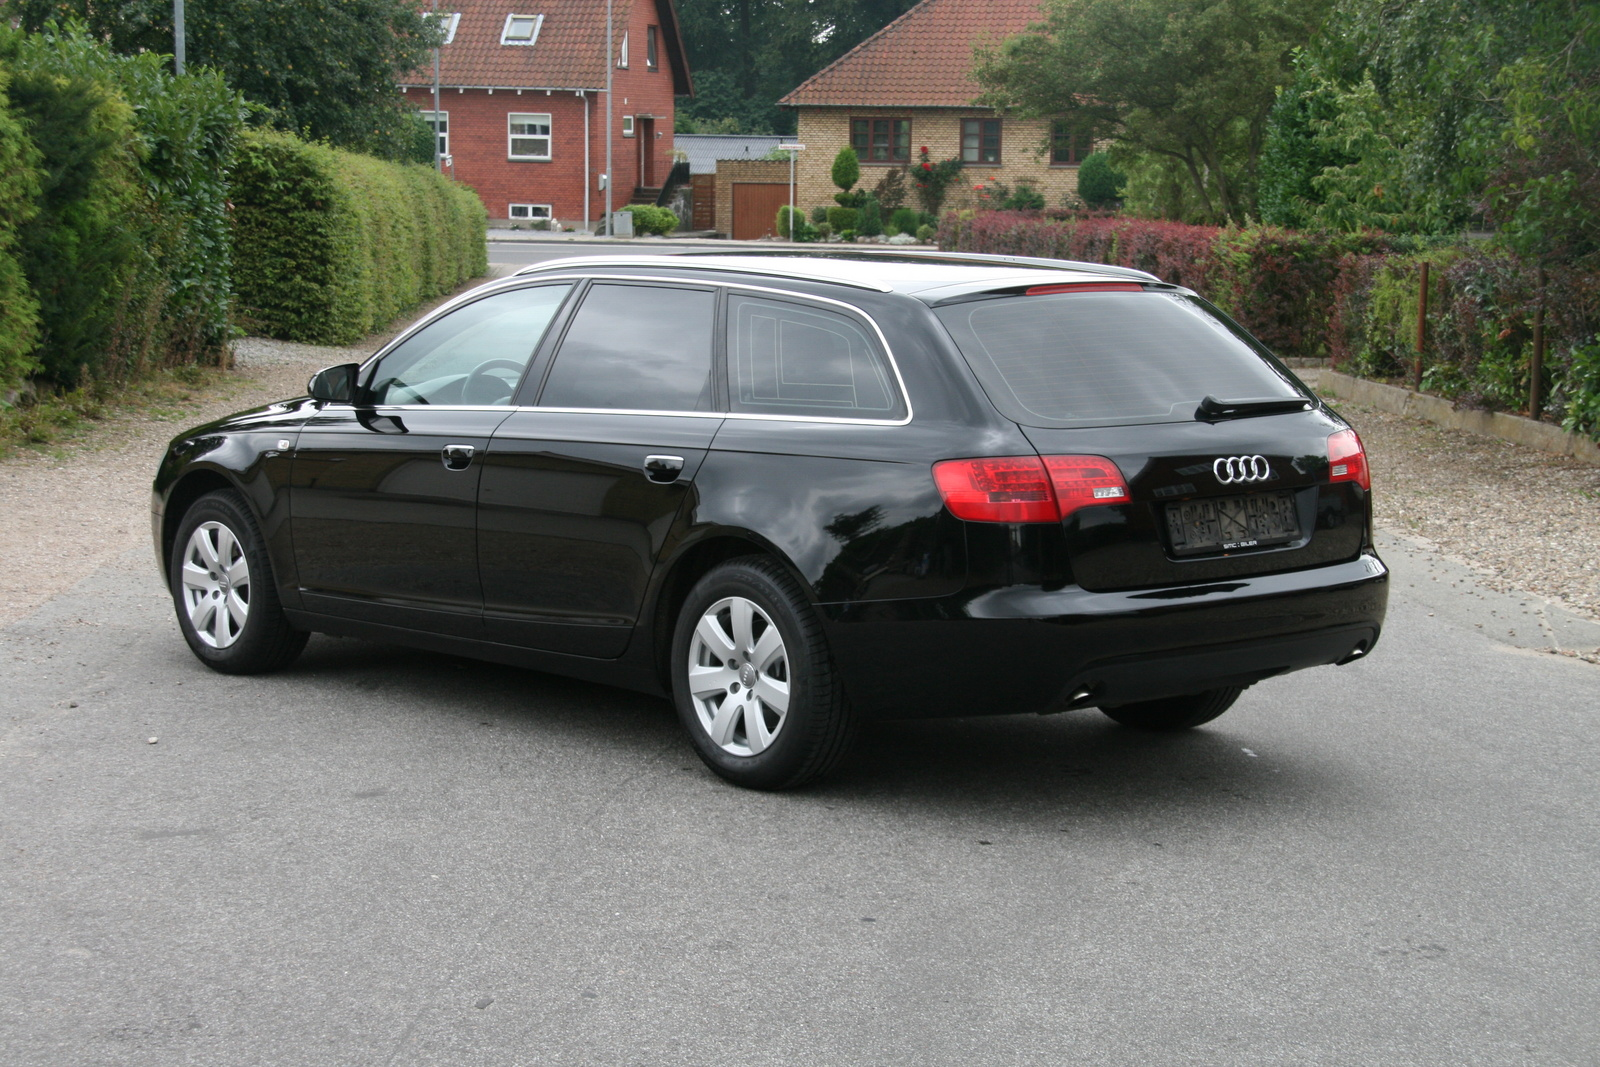 2007 audi a6 avant exterior pictures cargurus. Black Bedroom Furniture Sets. Home Design Ideas